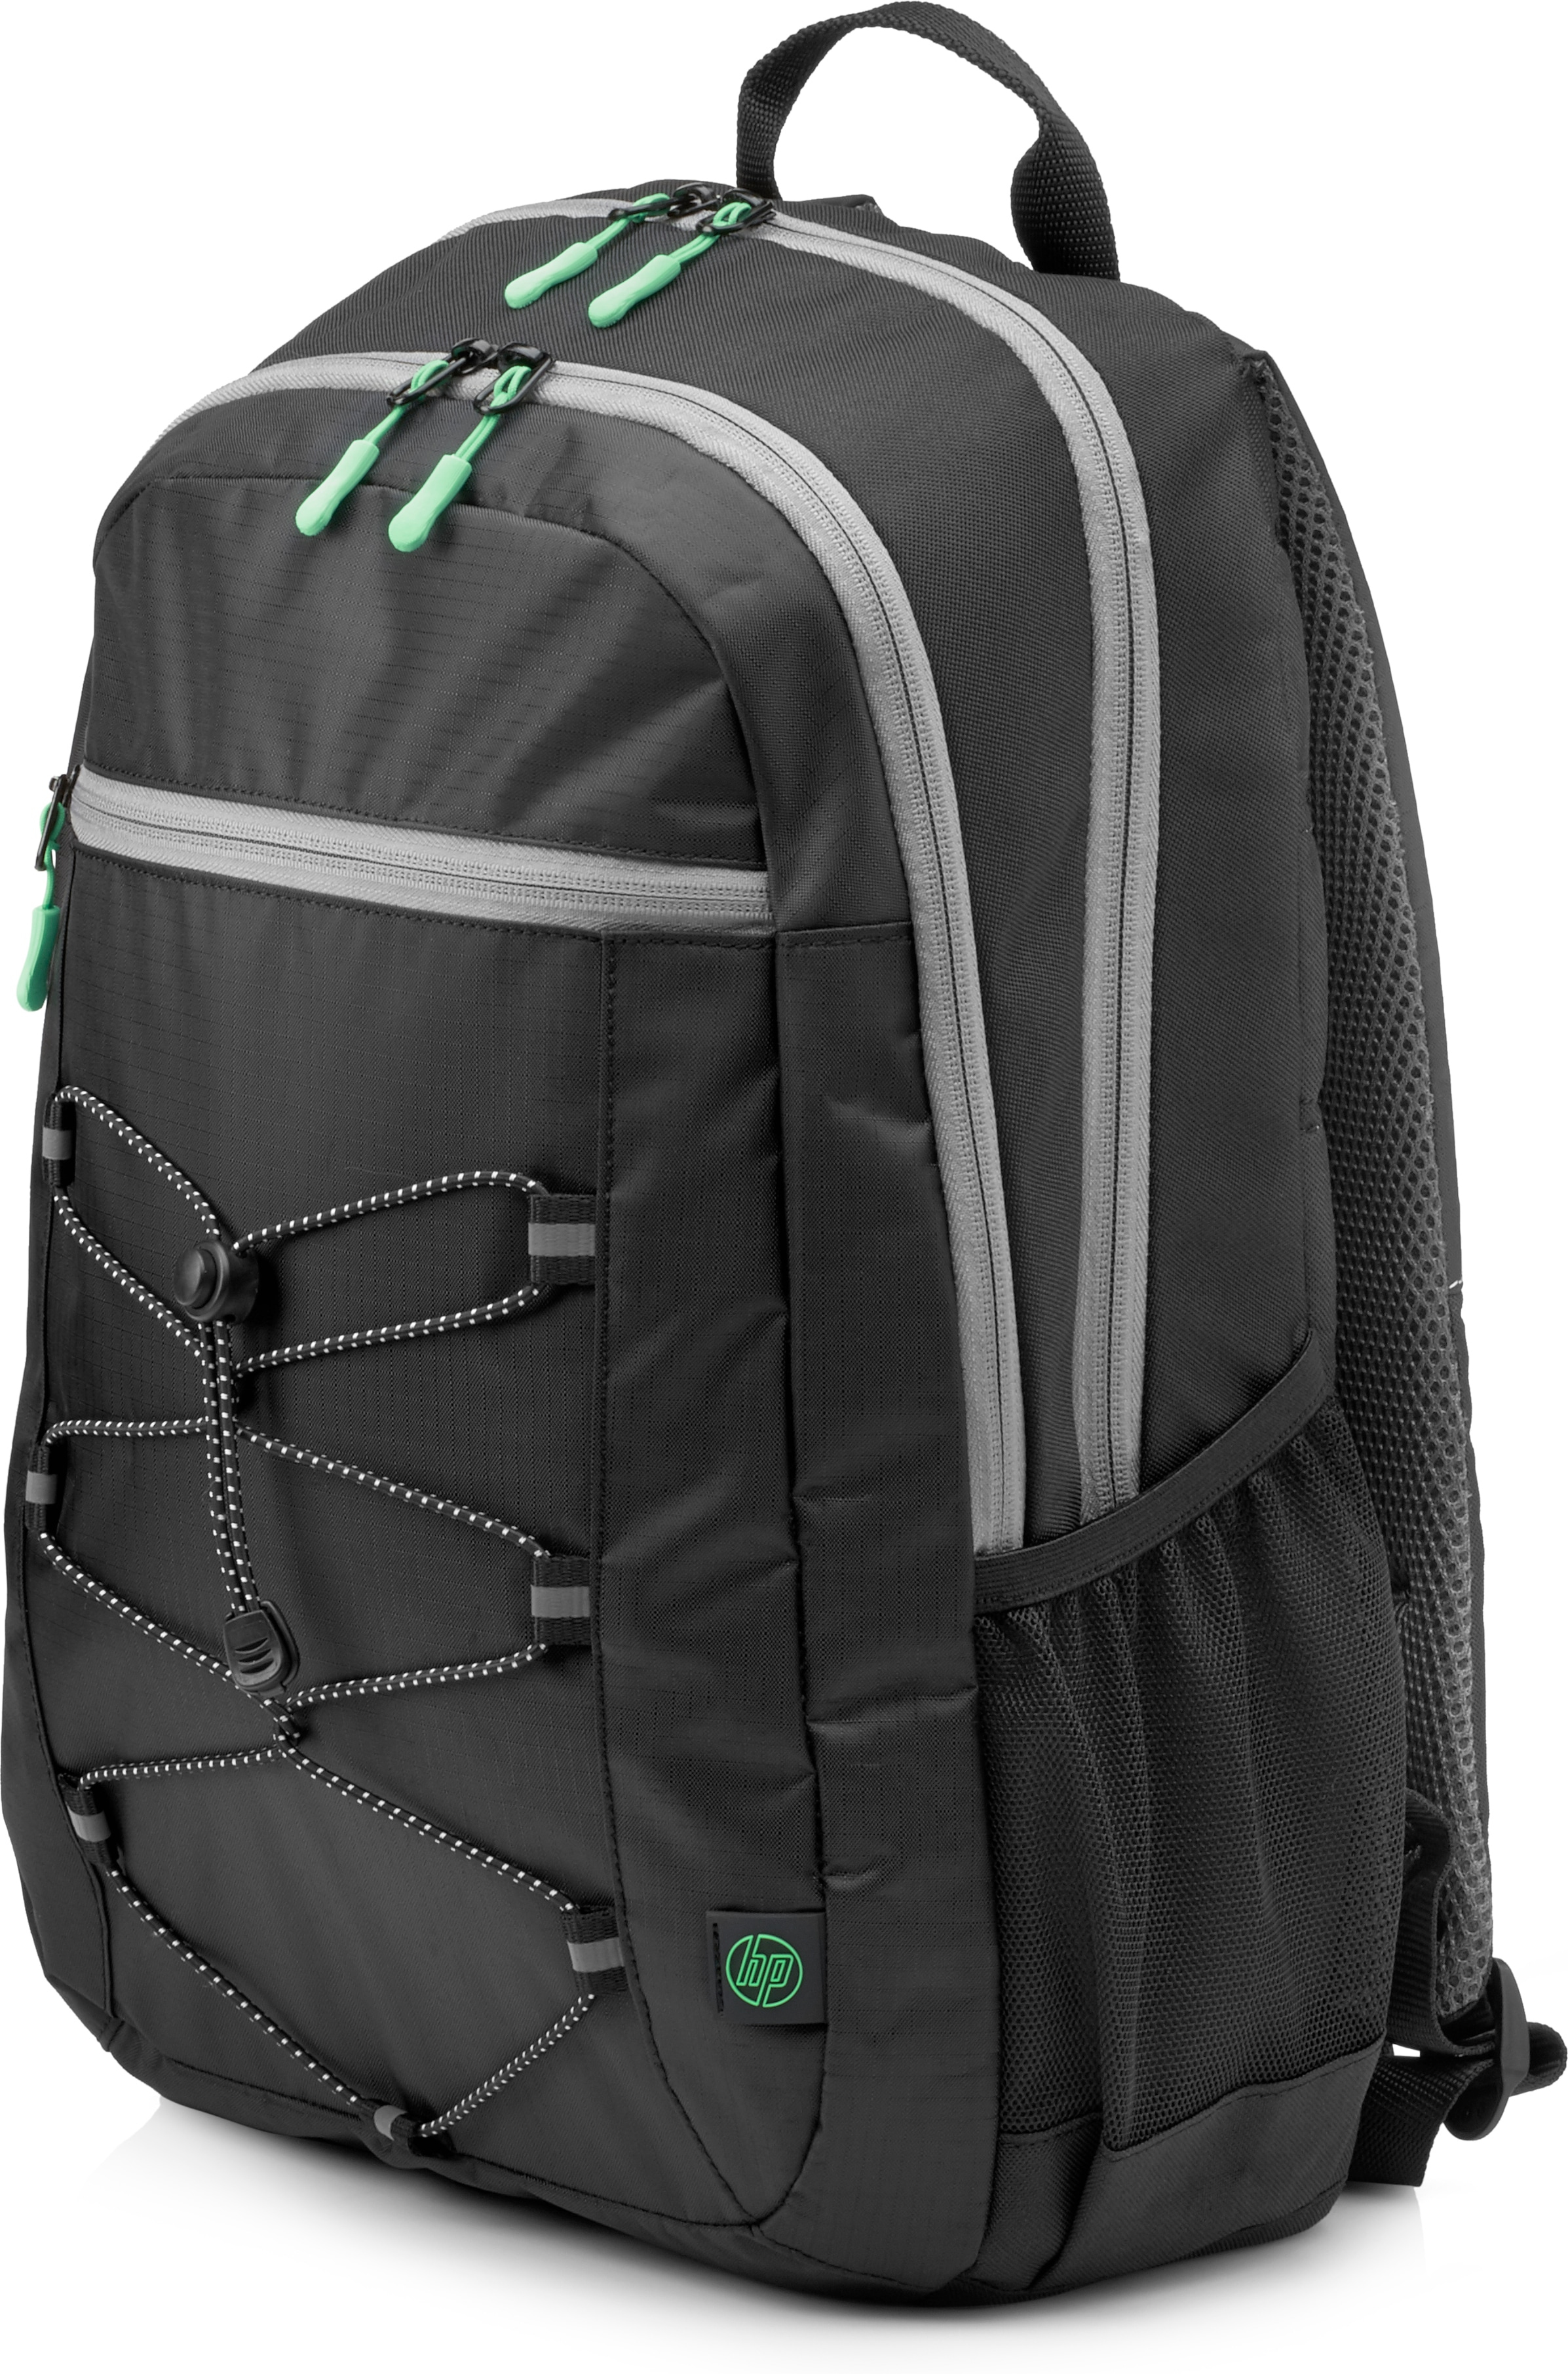 HP Active Backpack 2